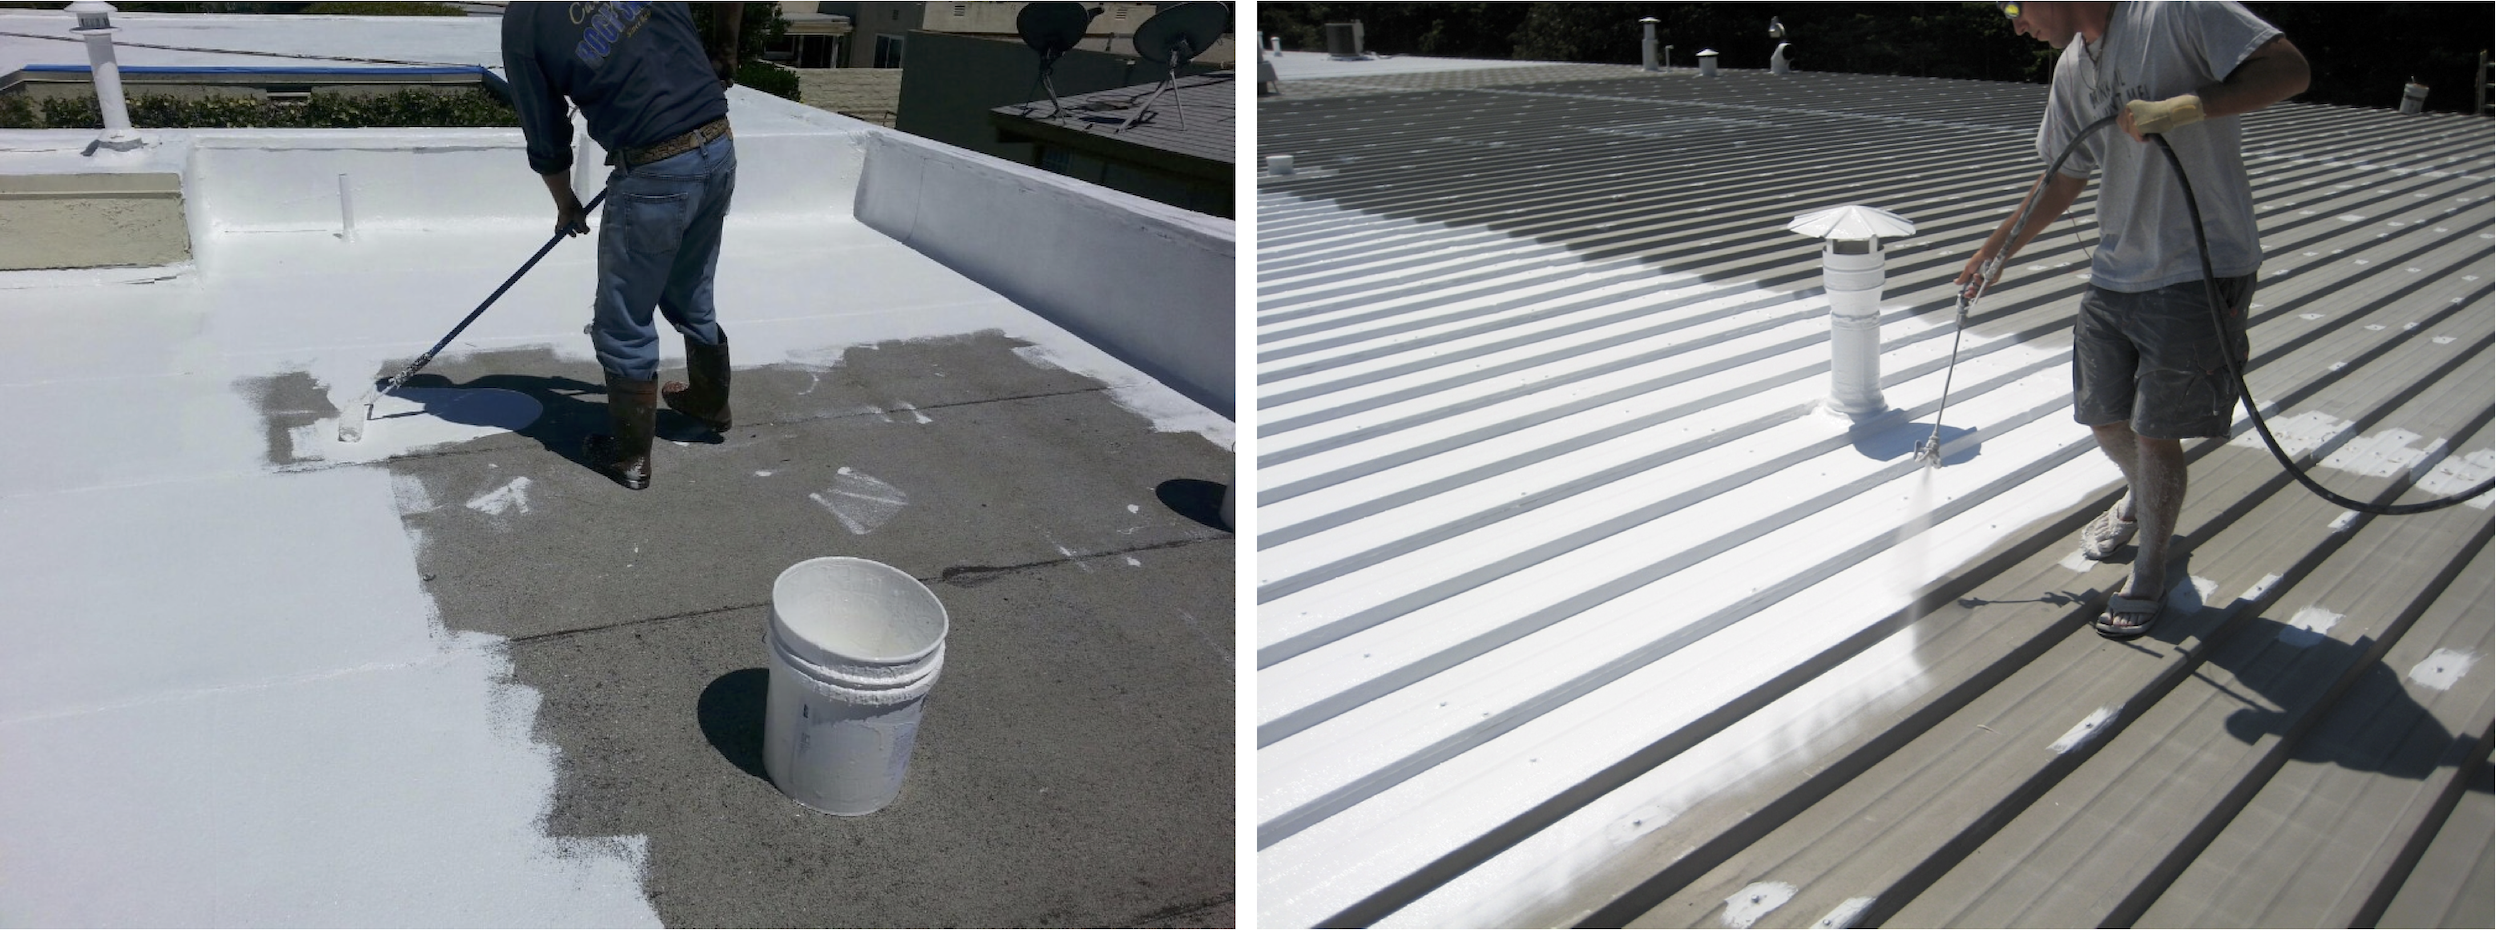 Technical Note - Waterproofing External Areas | BSBG | Brewer Smith